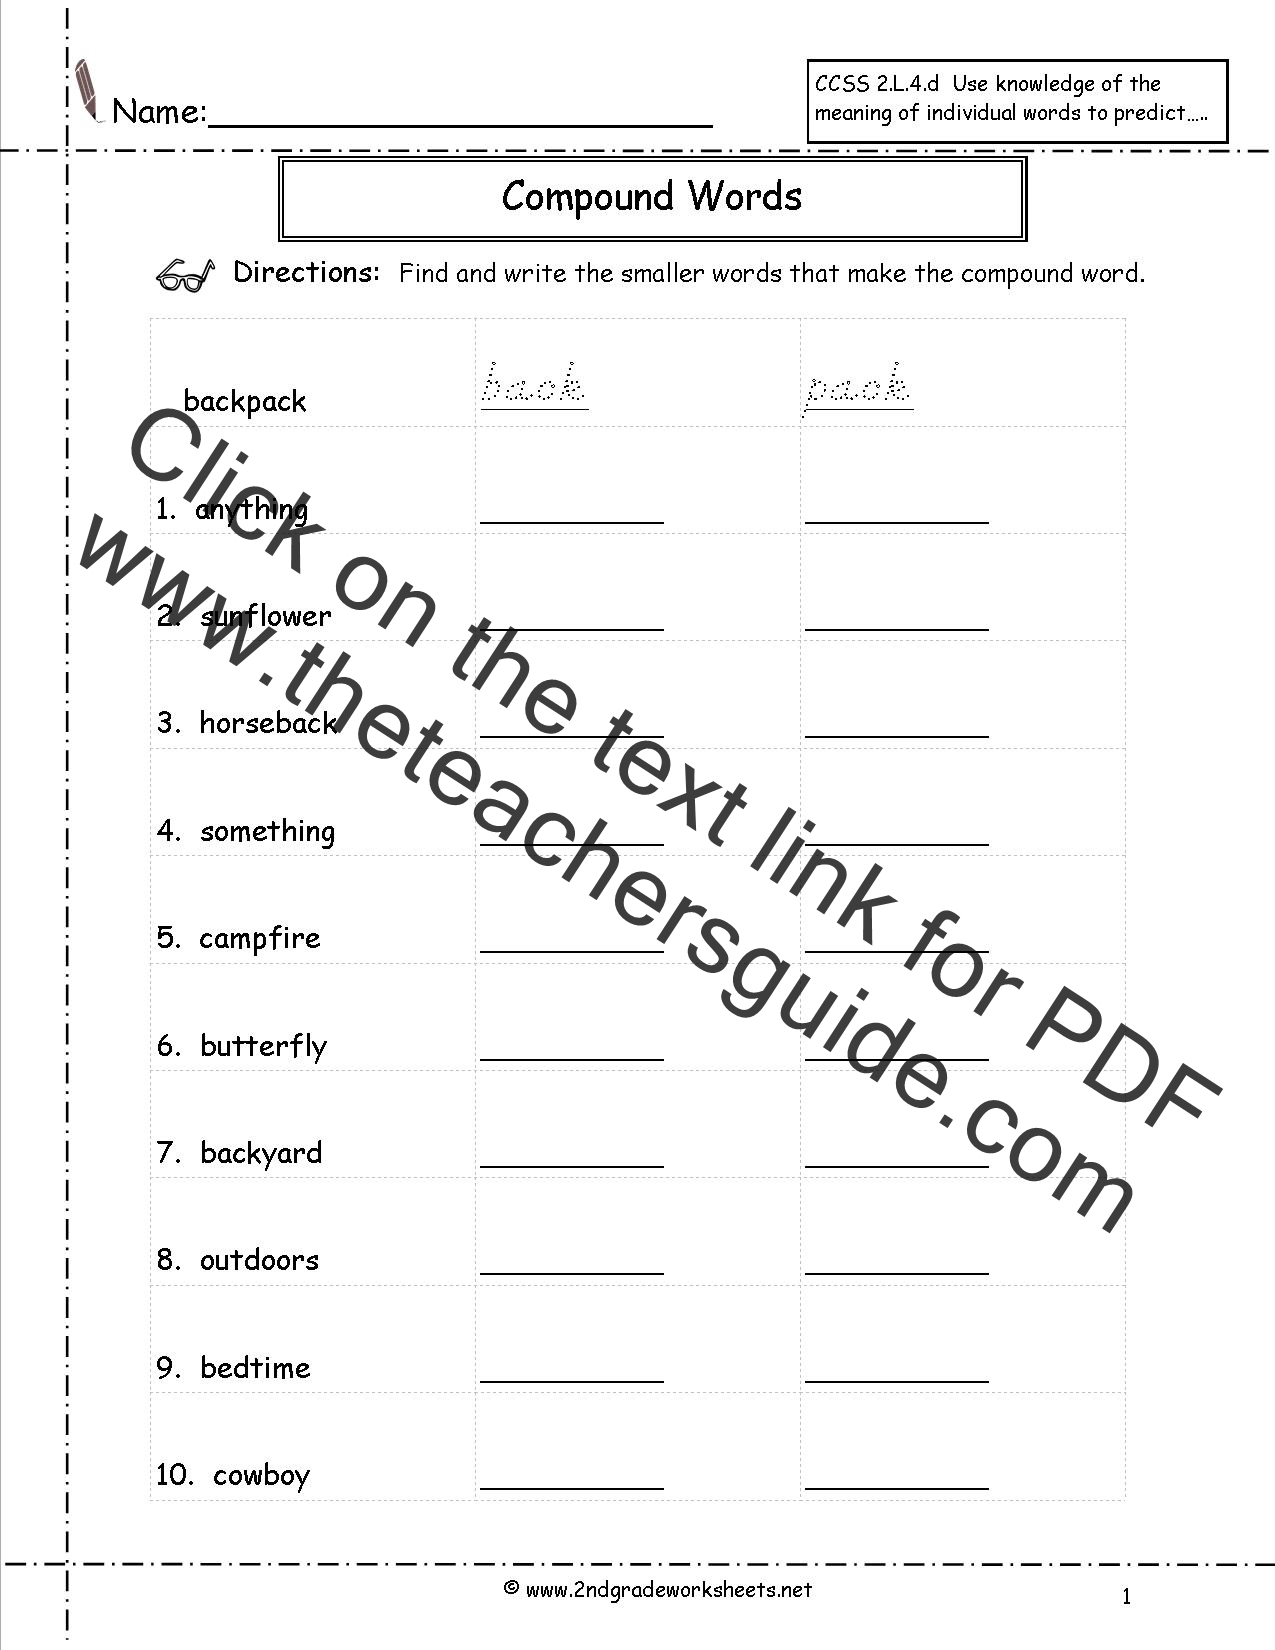 Worksheets Grammar Worksheets For 2nd Grade free languagegrammar worksheets and printouts compound words worksheets